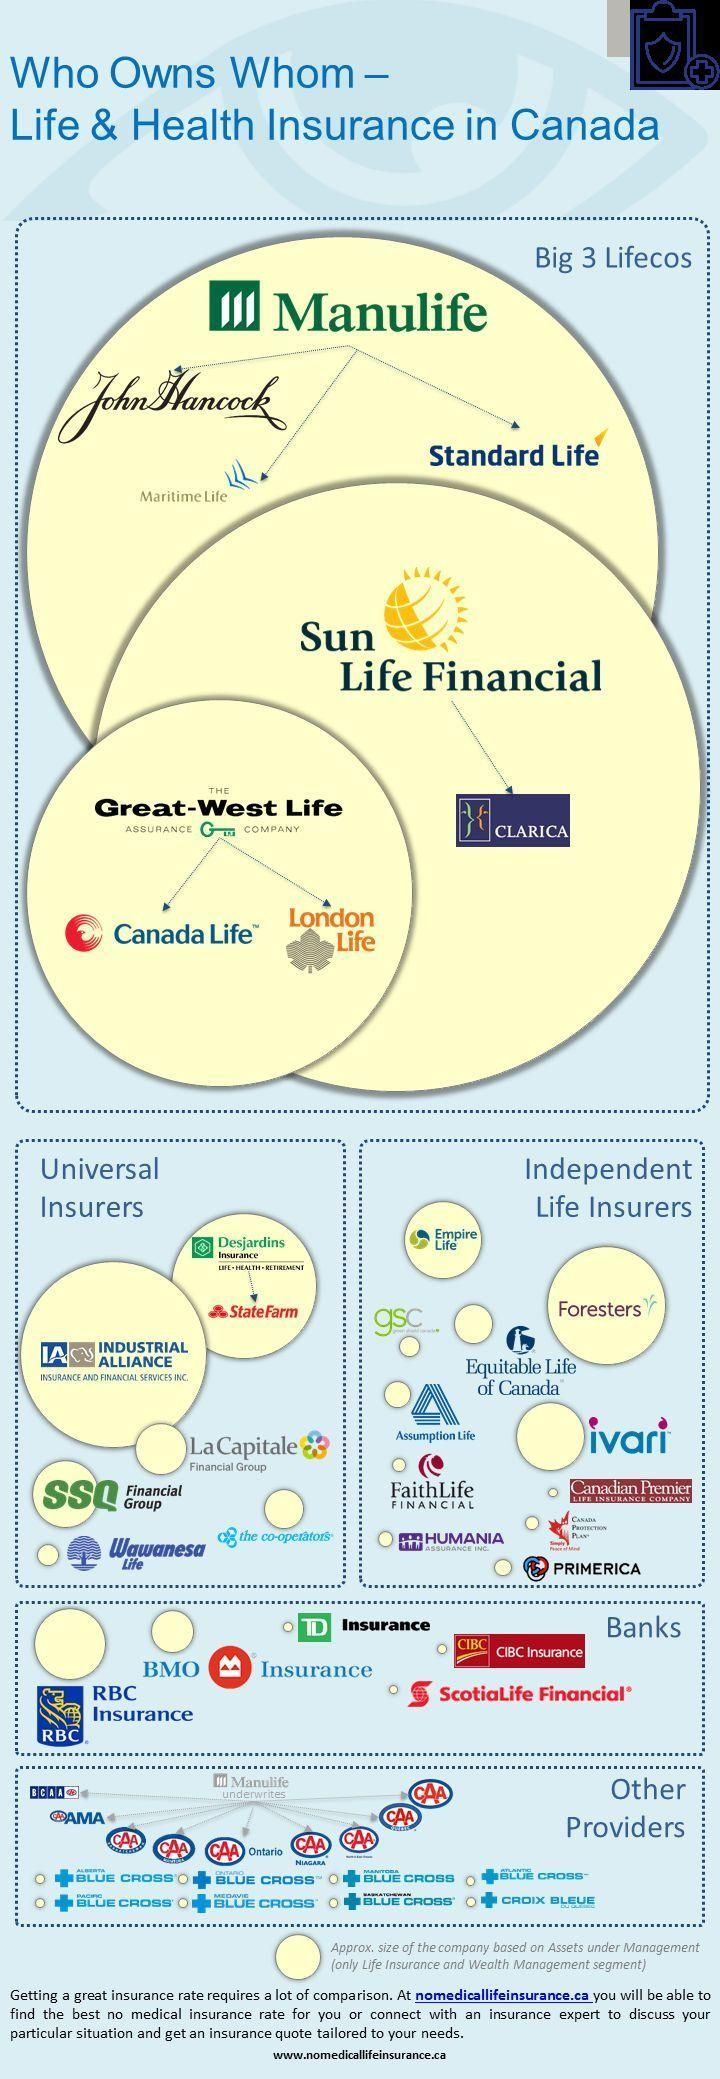 Wonderful Pics Who Owns Whom On A Canadian Life Insurance Market Canadian Insurance Life Thoughts Health Insurance Life Insurance Companies Life And Health Insurance